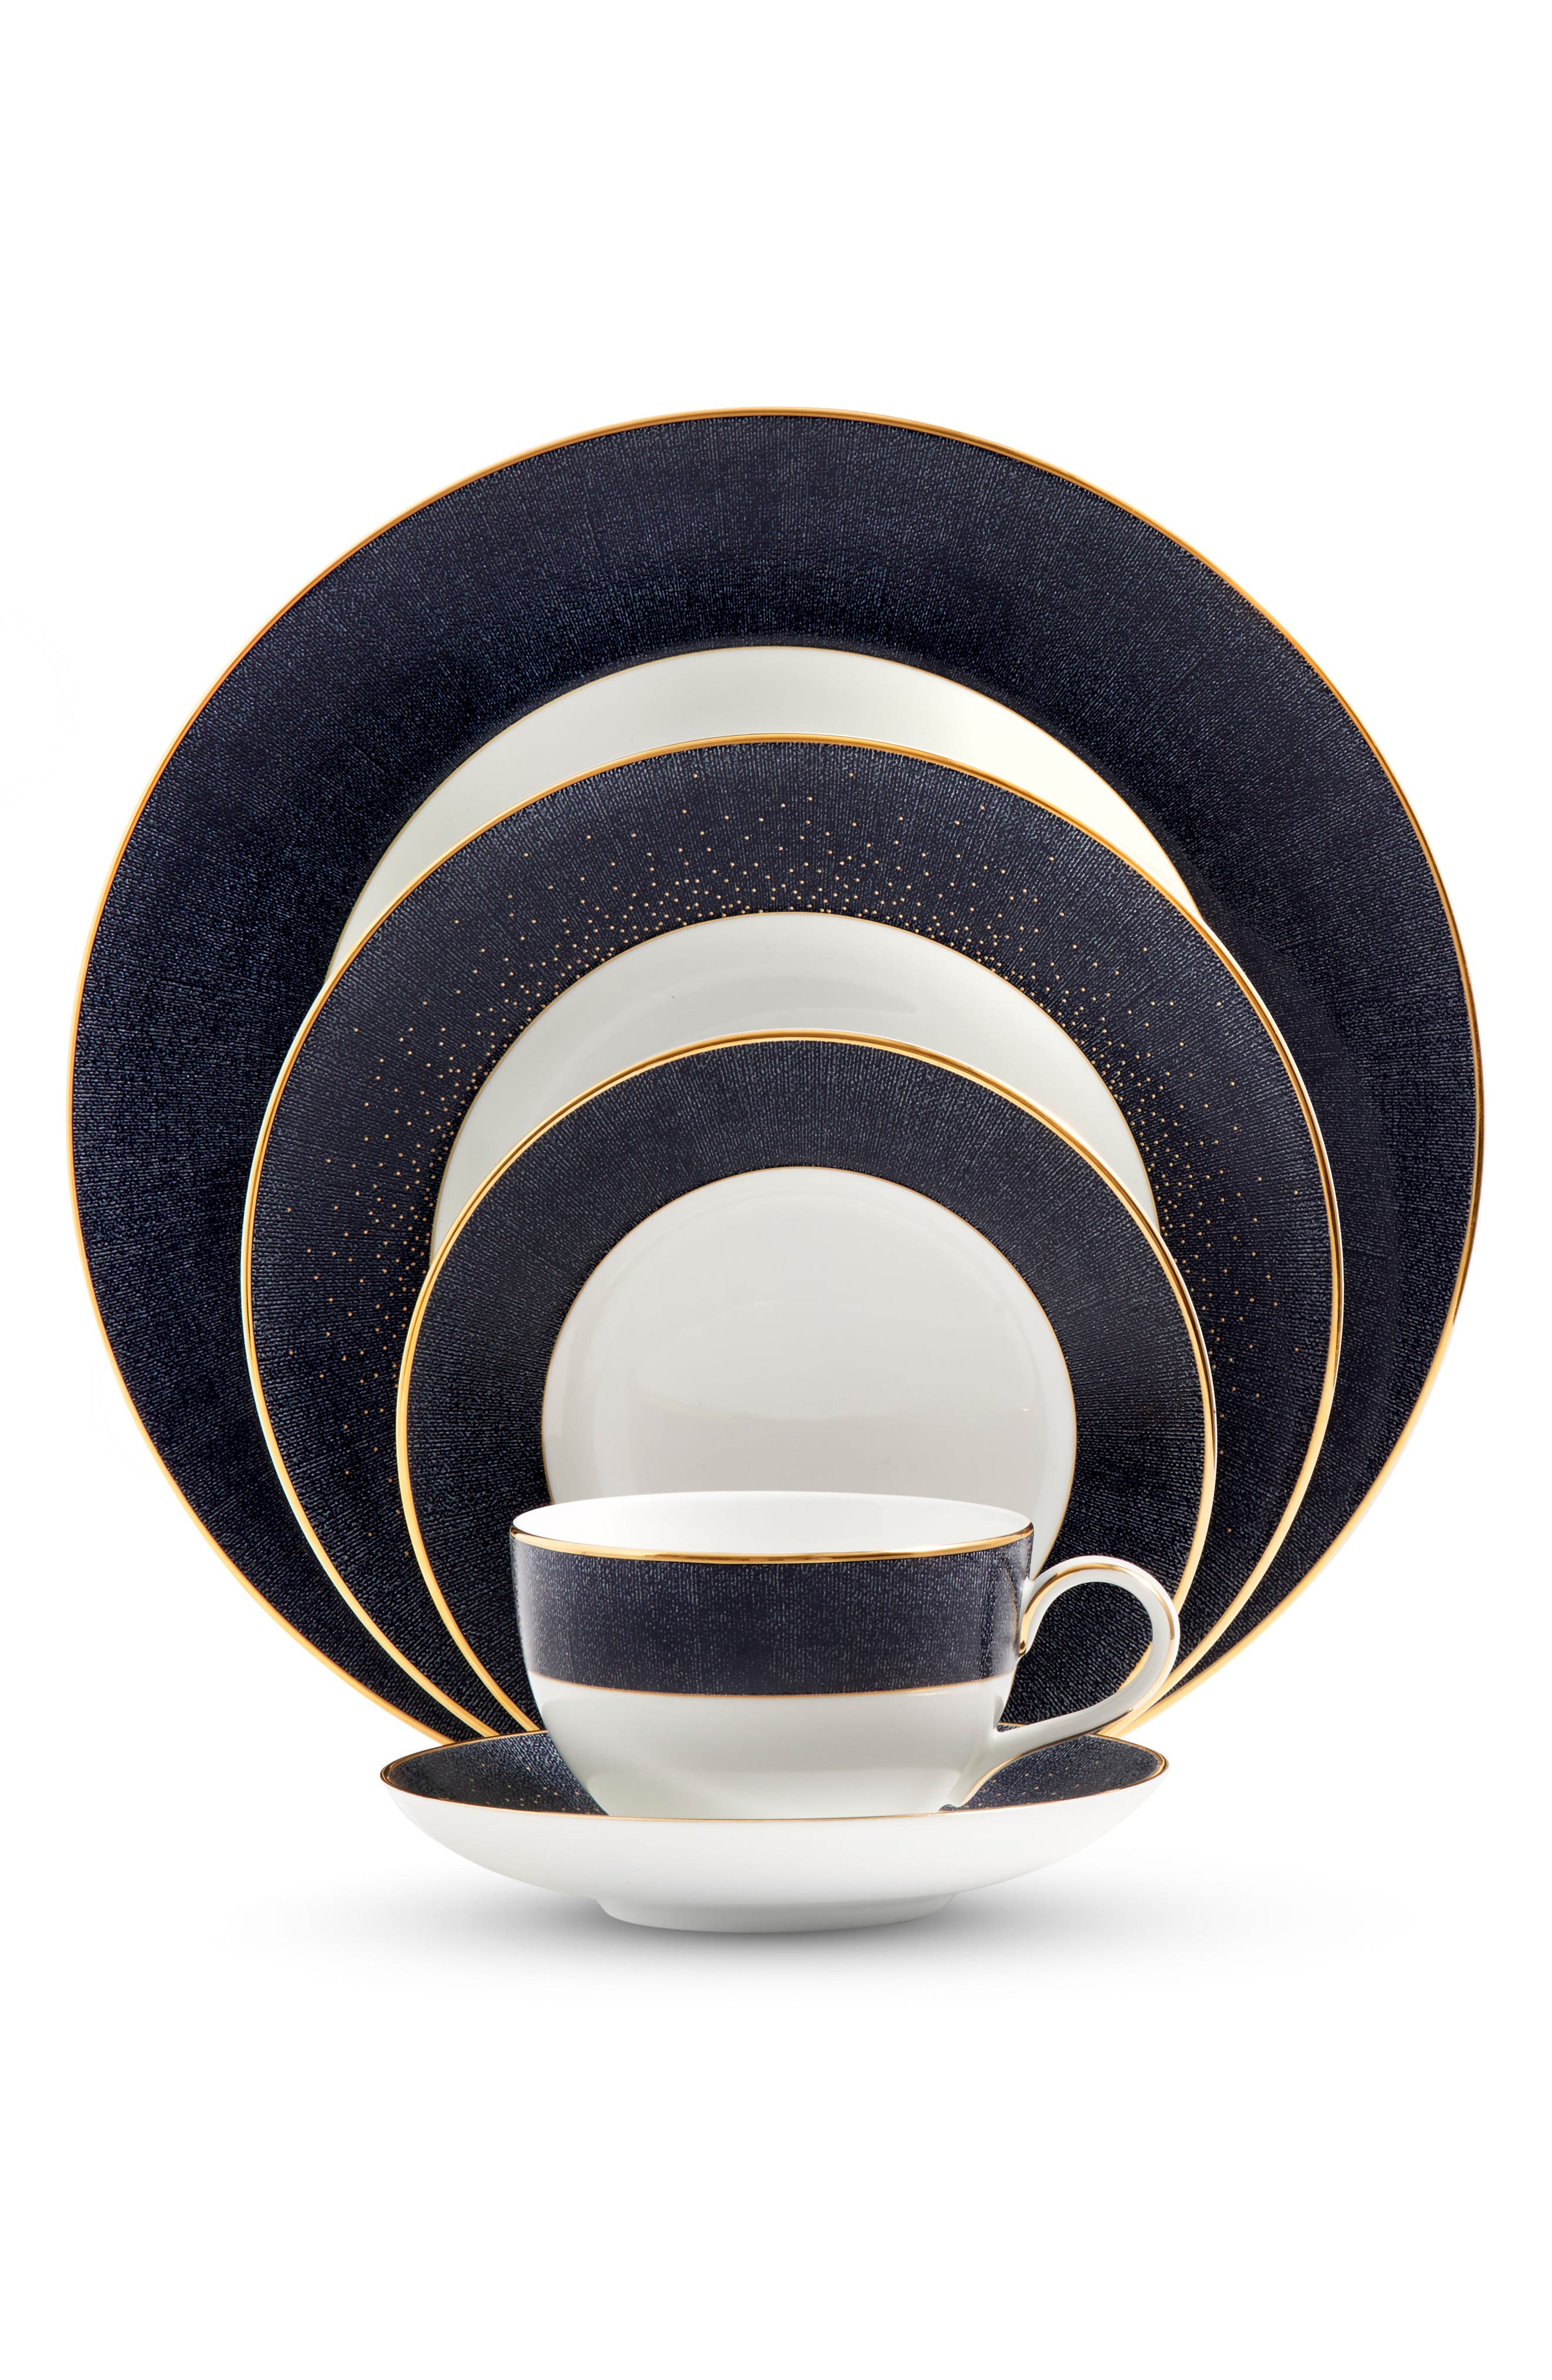 Main Image - Monique Lhuillier Waterford Stardust Night 5-Piece Bone China Dinnerware Place Setting